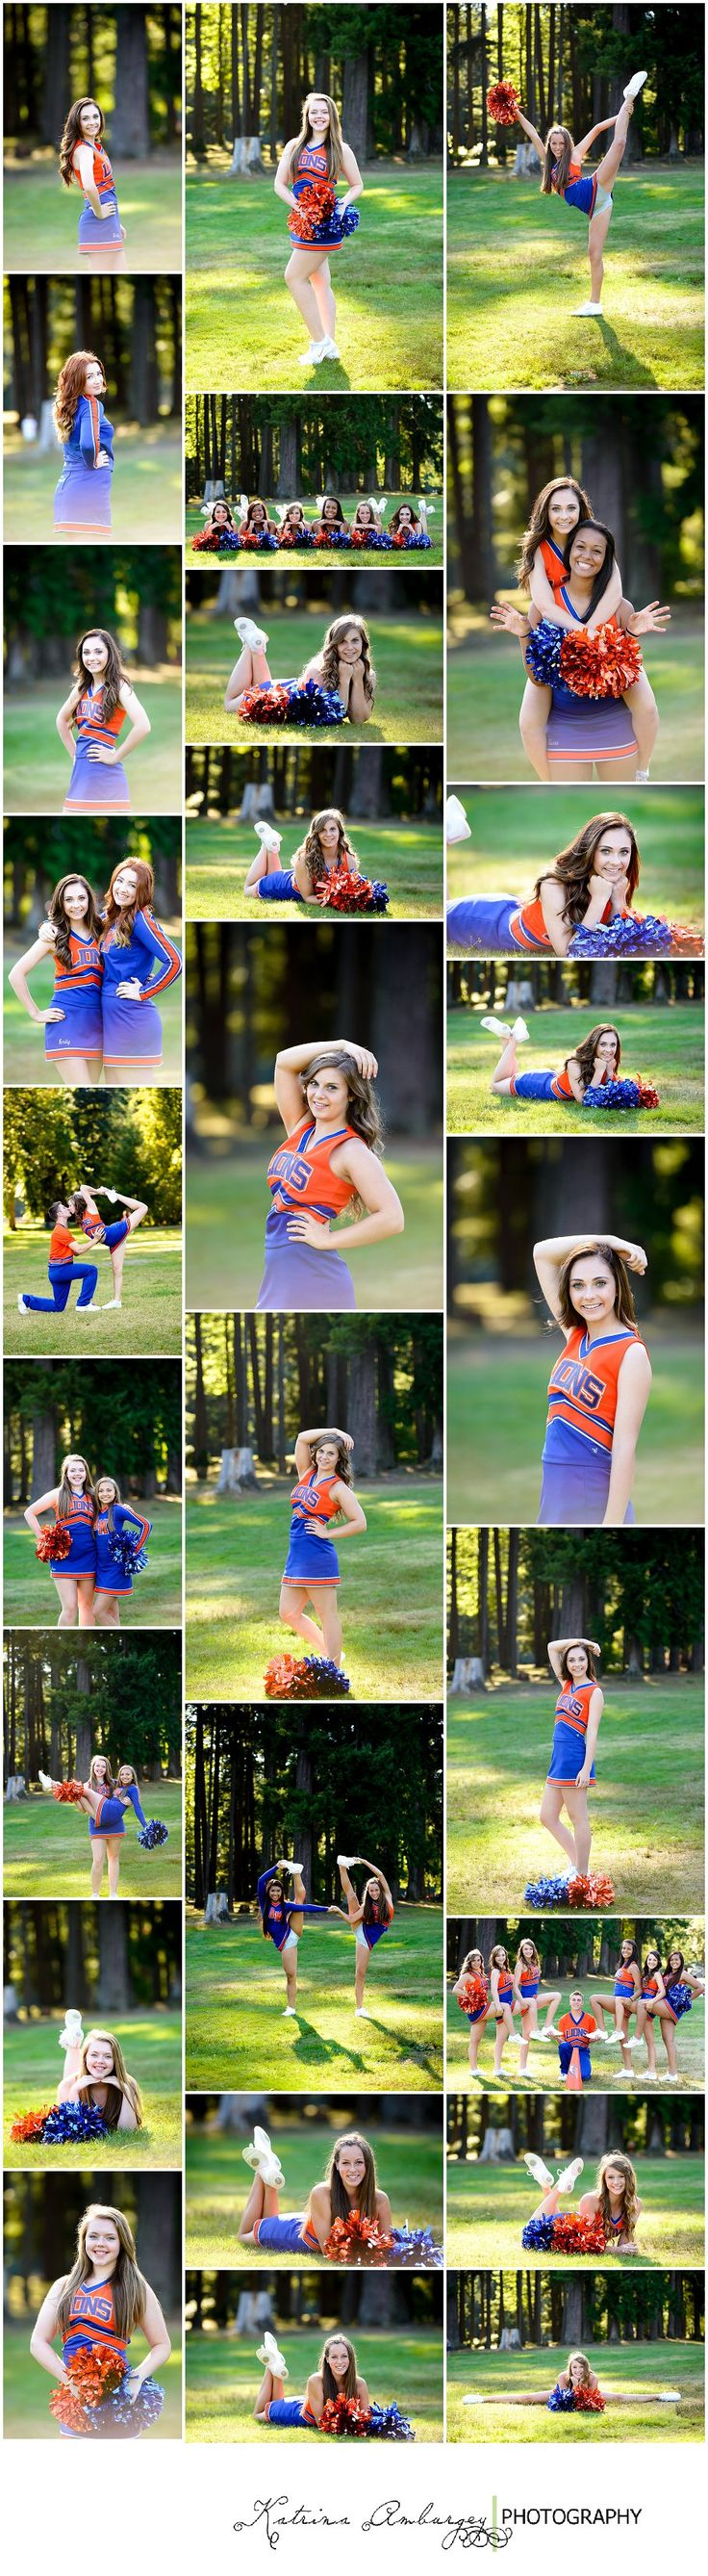 Auburn Mountainview Cheerleaders { Auburn Senior Photographer } » kamburgeyphotography.com cheerleading, poses, seniors, teens, highschool